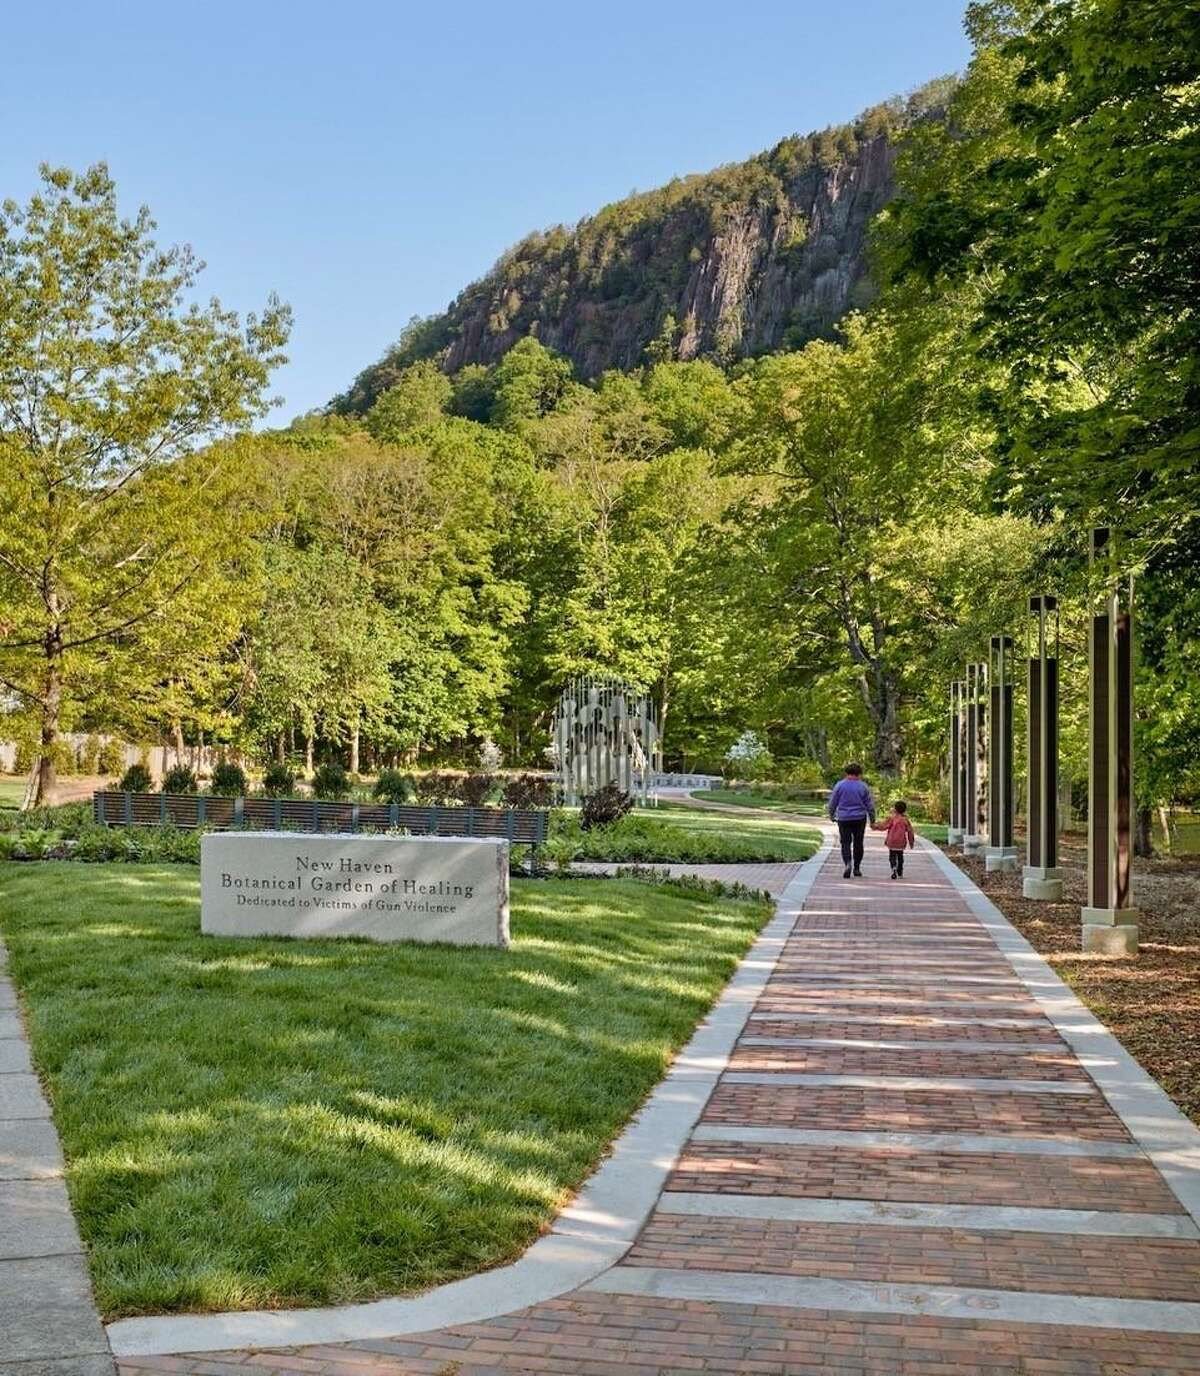 The New Haven Botanical Garden of Healing Dedicated to Victims of Gun Violence, created by mothers who have lost loved ones, will be dedicated Saturday.